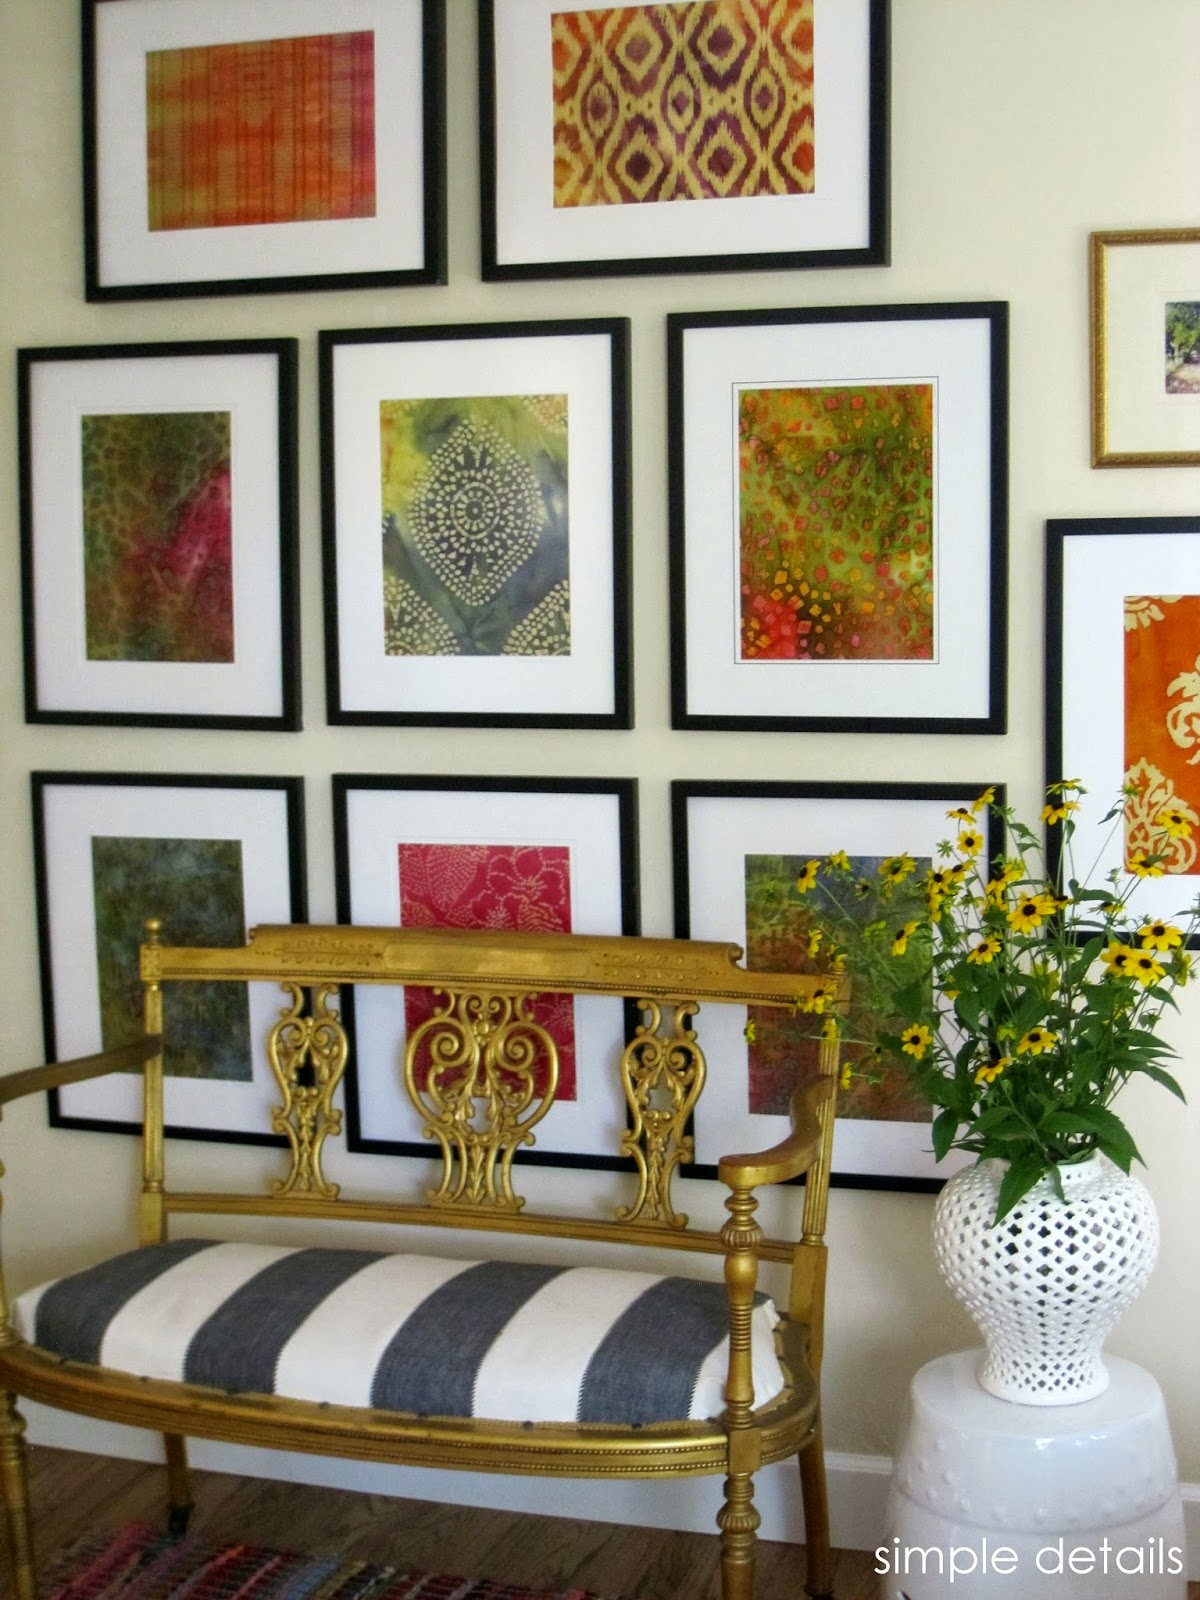 Simple details diy framed batik fabric for Fabric picture frames